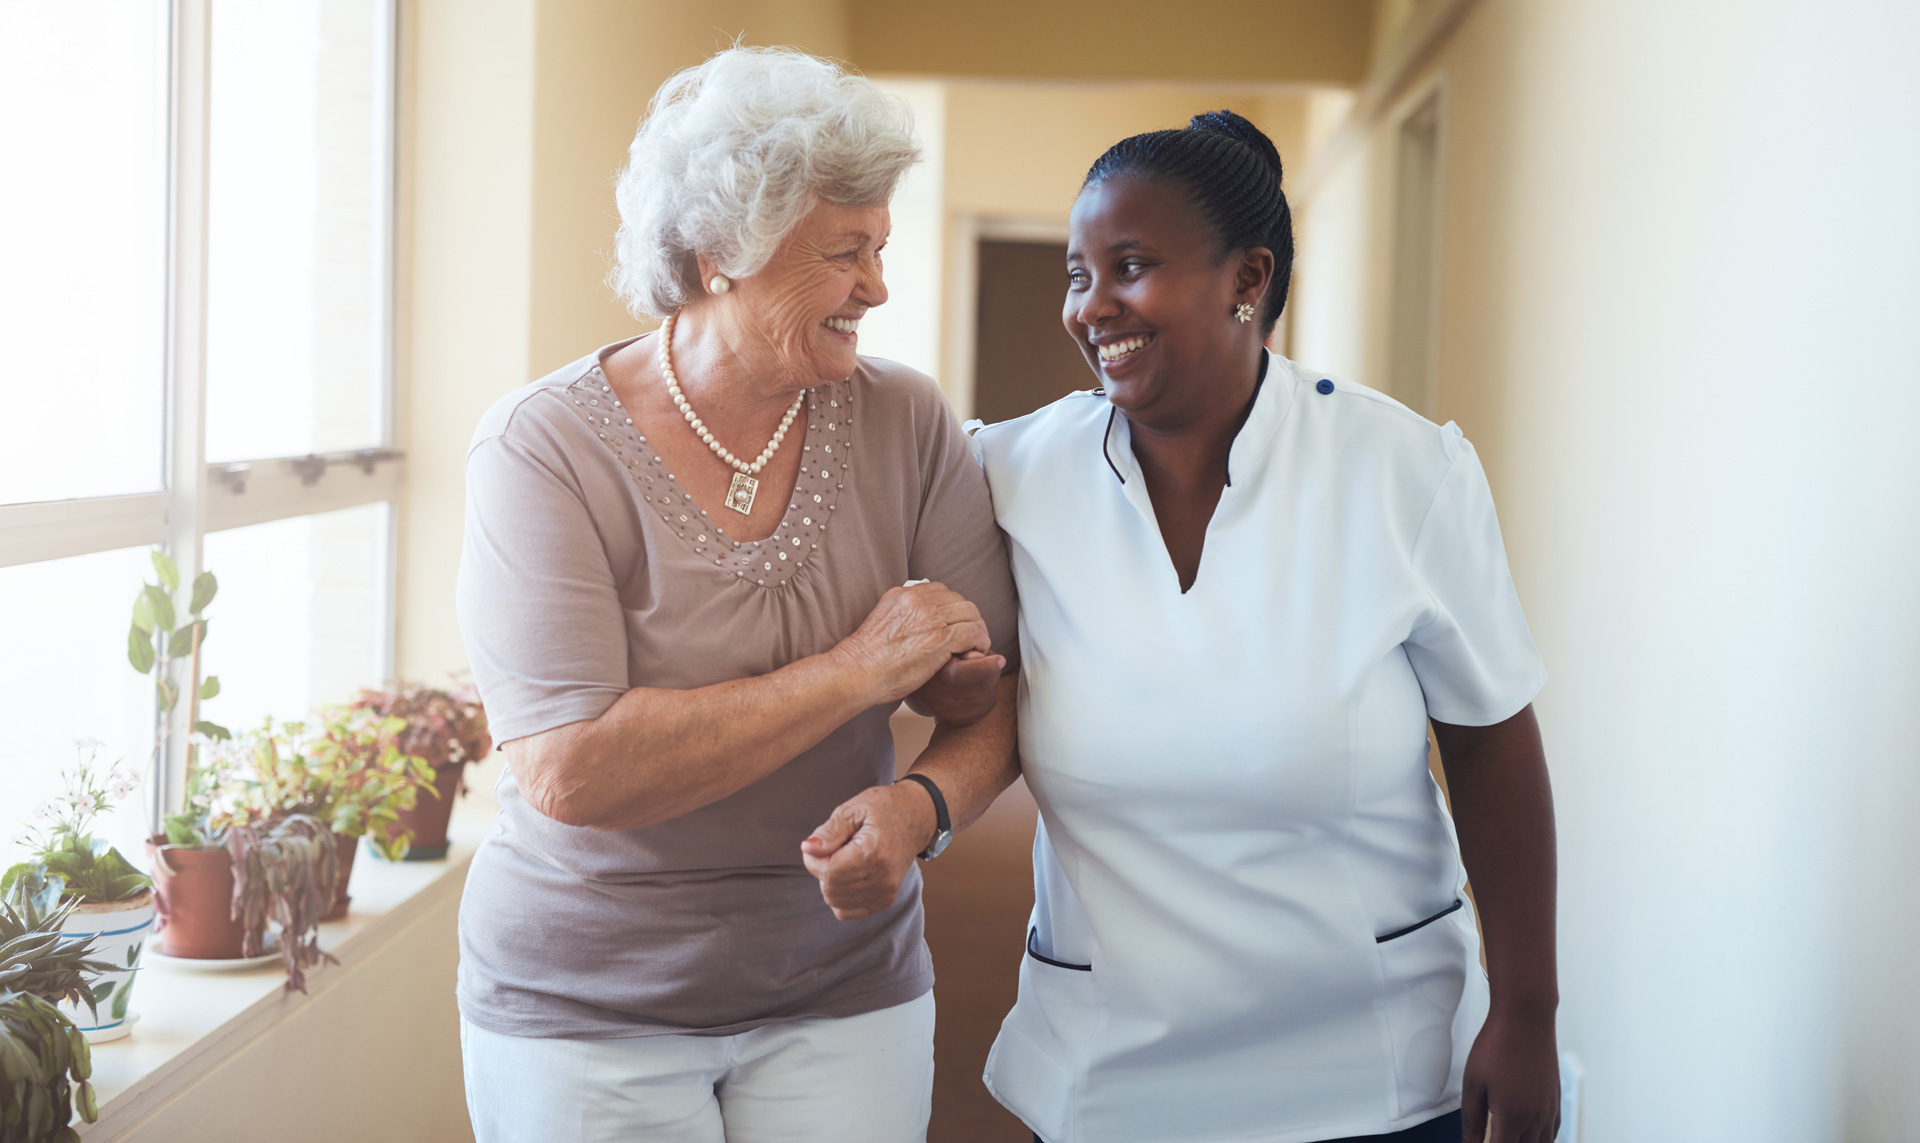 Handi-Care, Inc.: Elderly Care, Home Care Services and Personal Care in Morganton, Hickory and Valdese